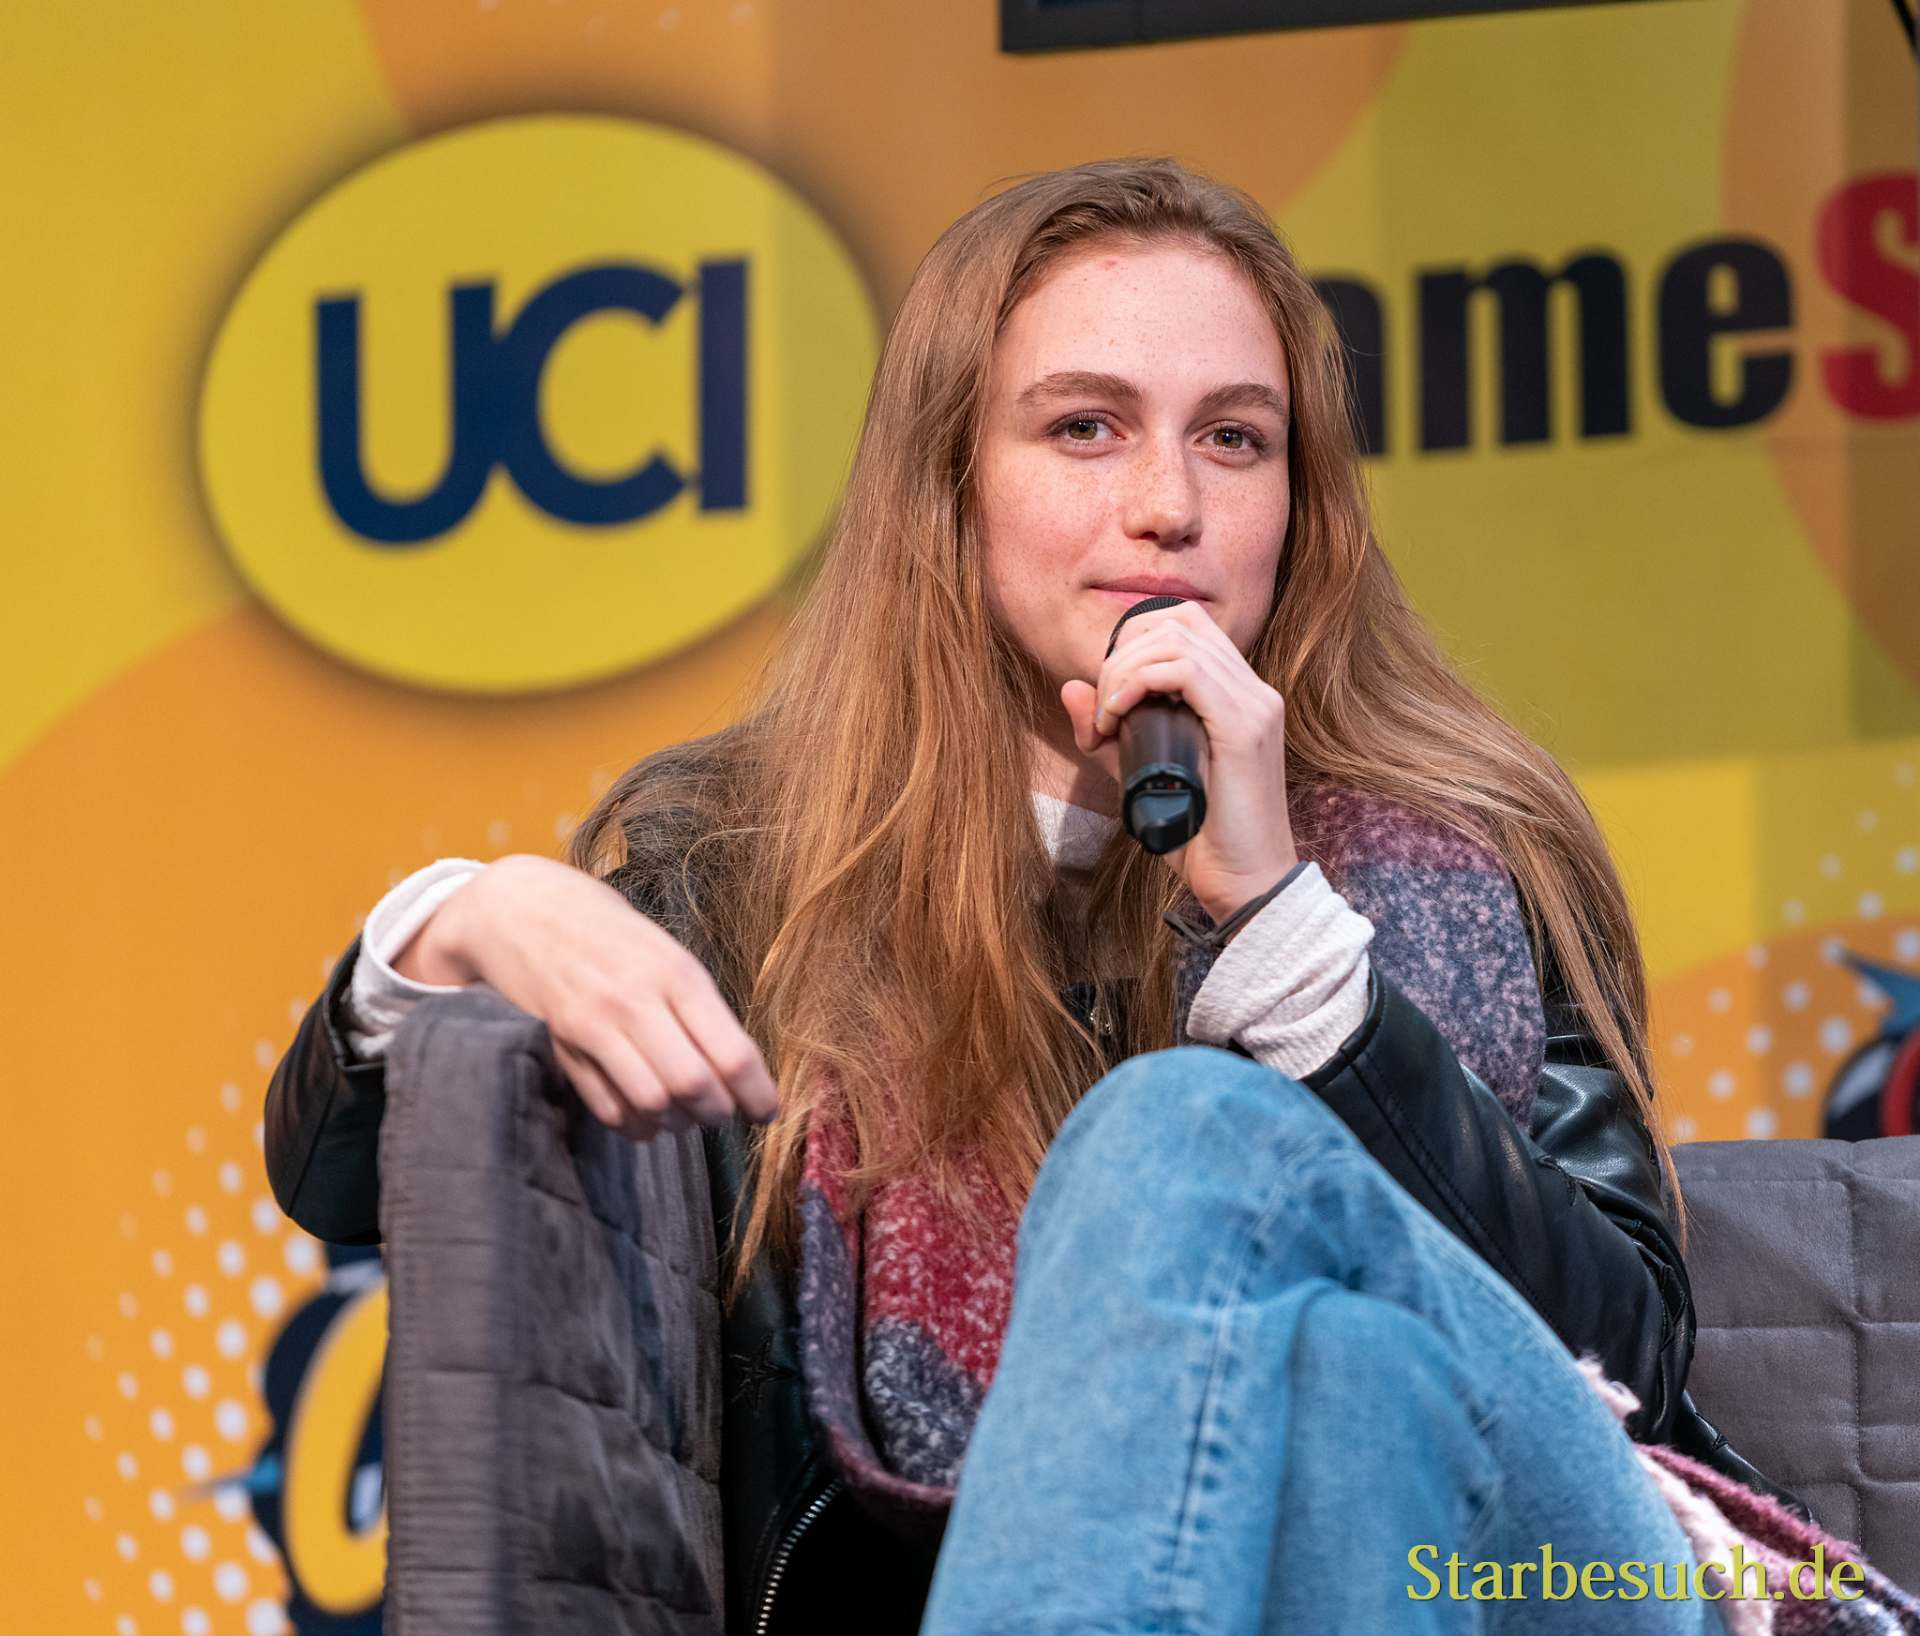 DORTMUND, GERMANY - December 7th 2019: Madison Lintz at German Comic Con Dortmund